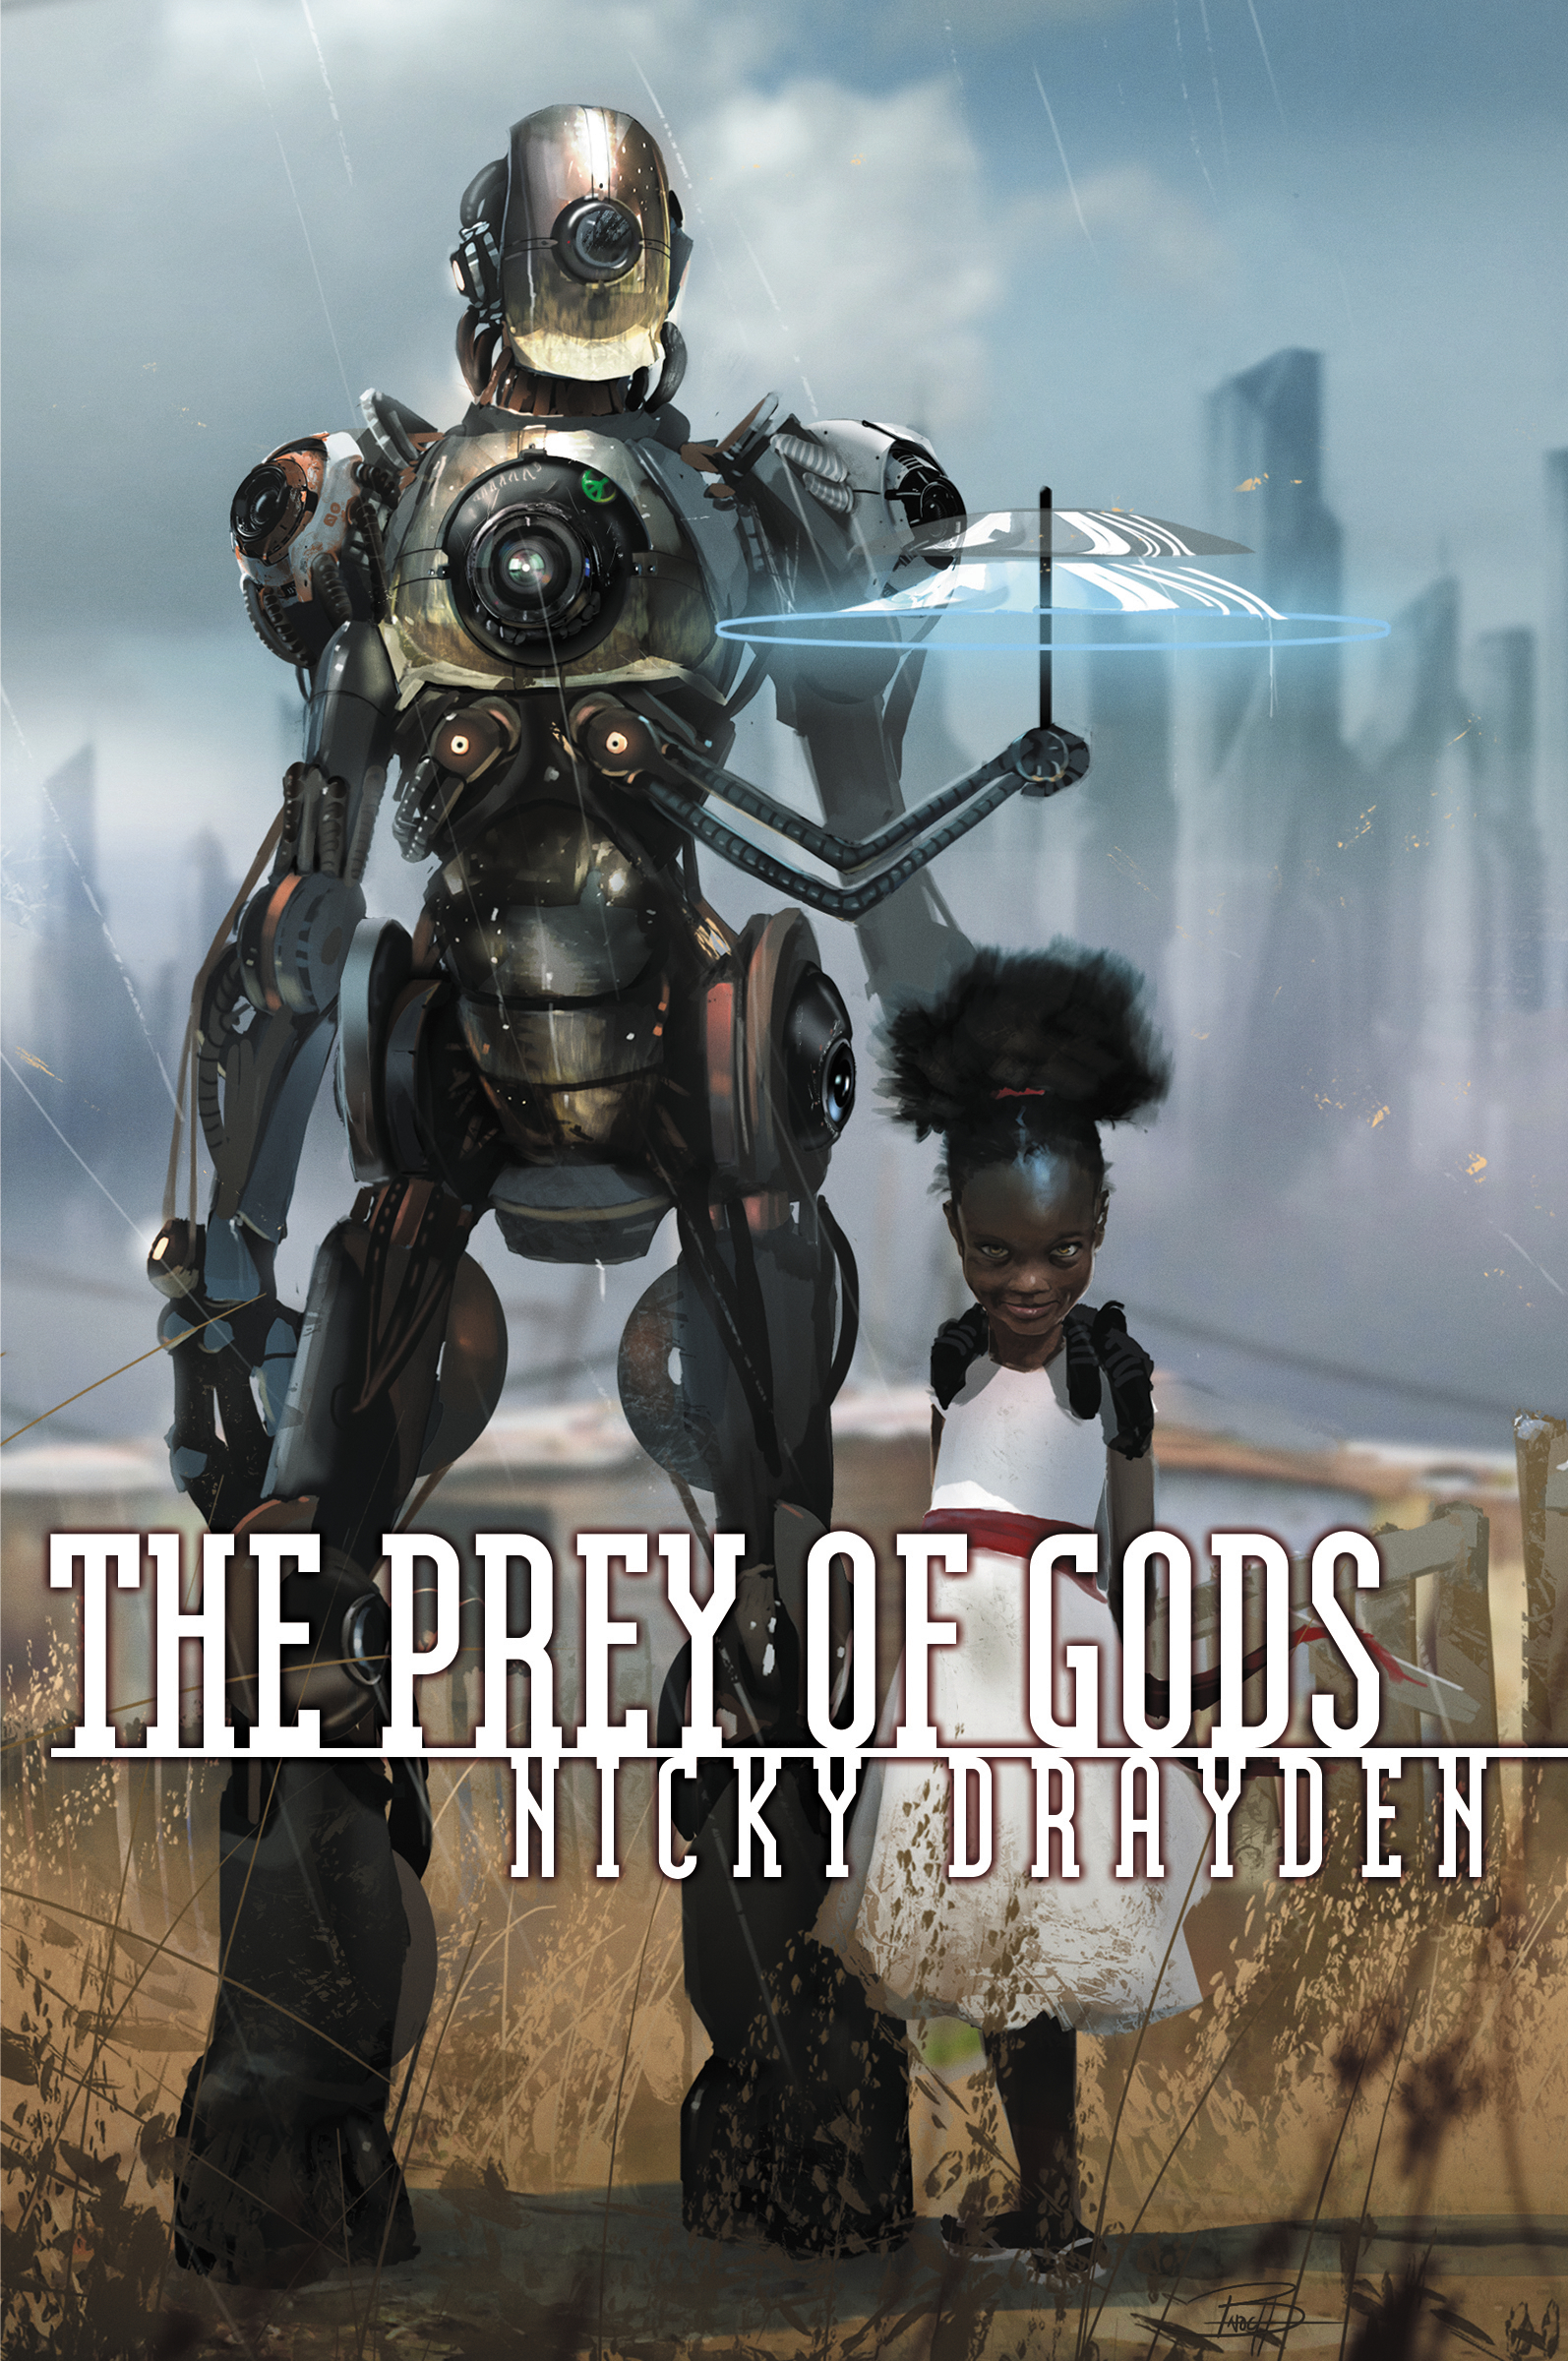 The Prey of Gods is on sale today